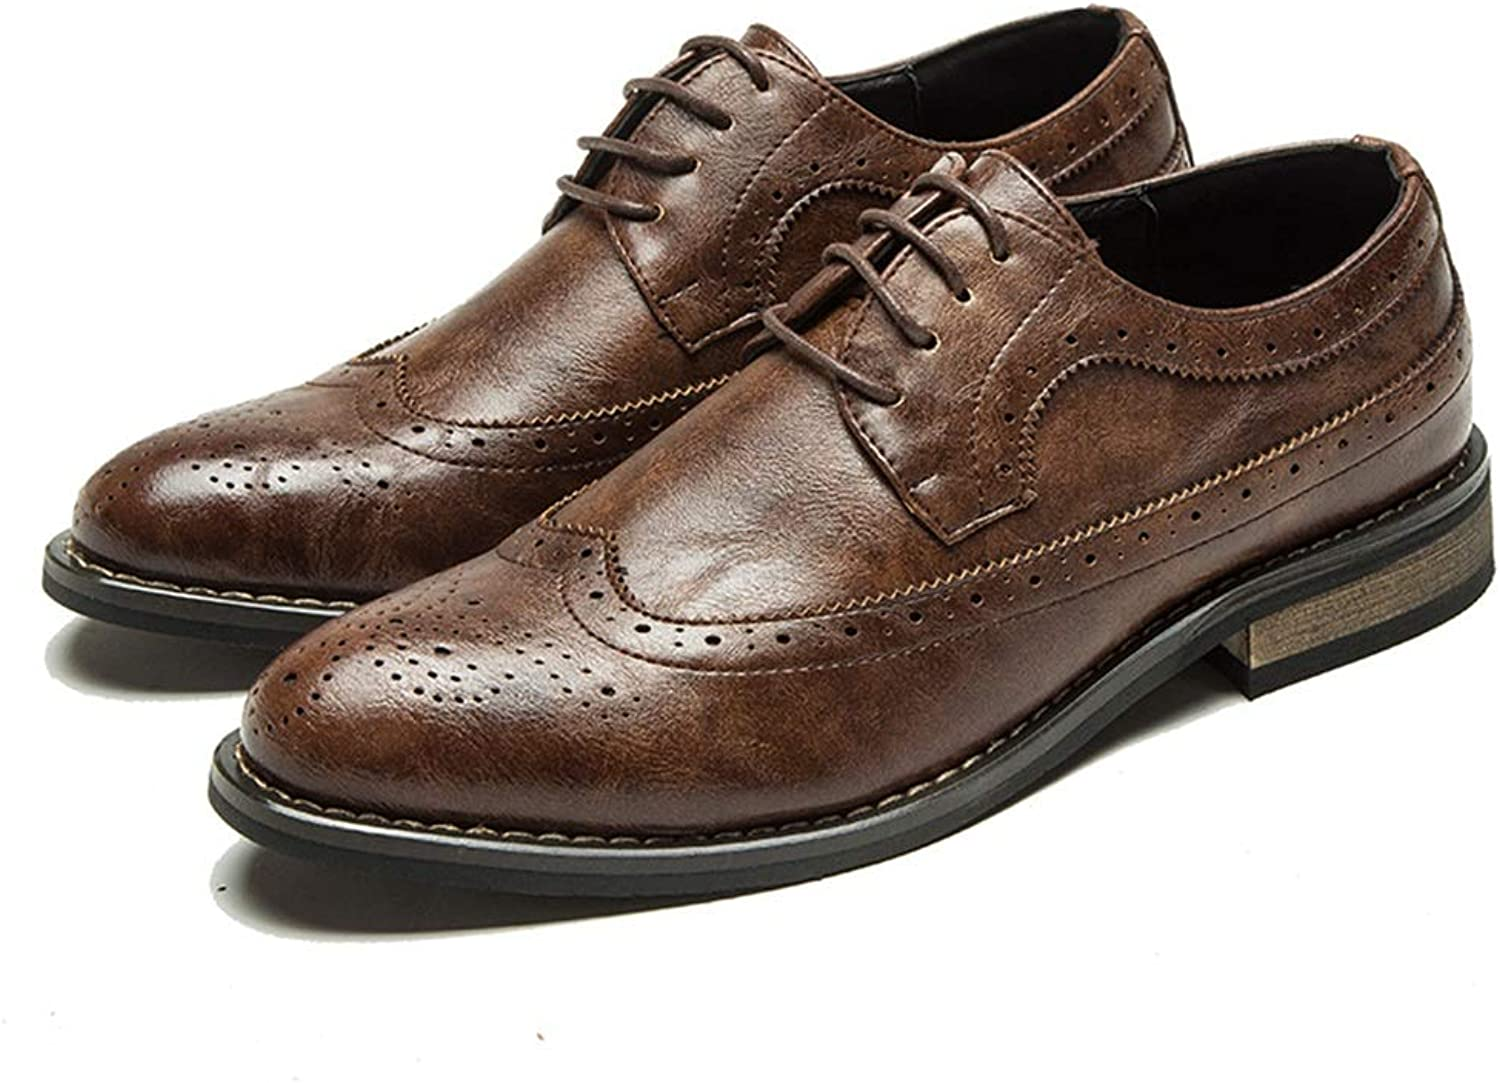 Men's Business Oxford Casual Classic British Style Low Top Carving Brogue shoes